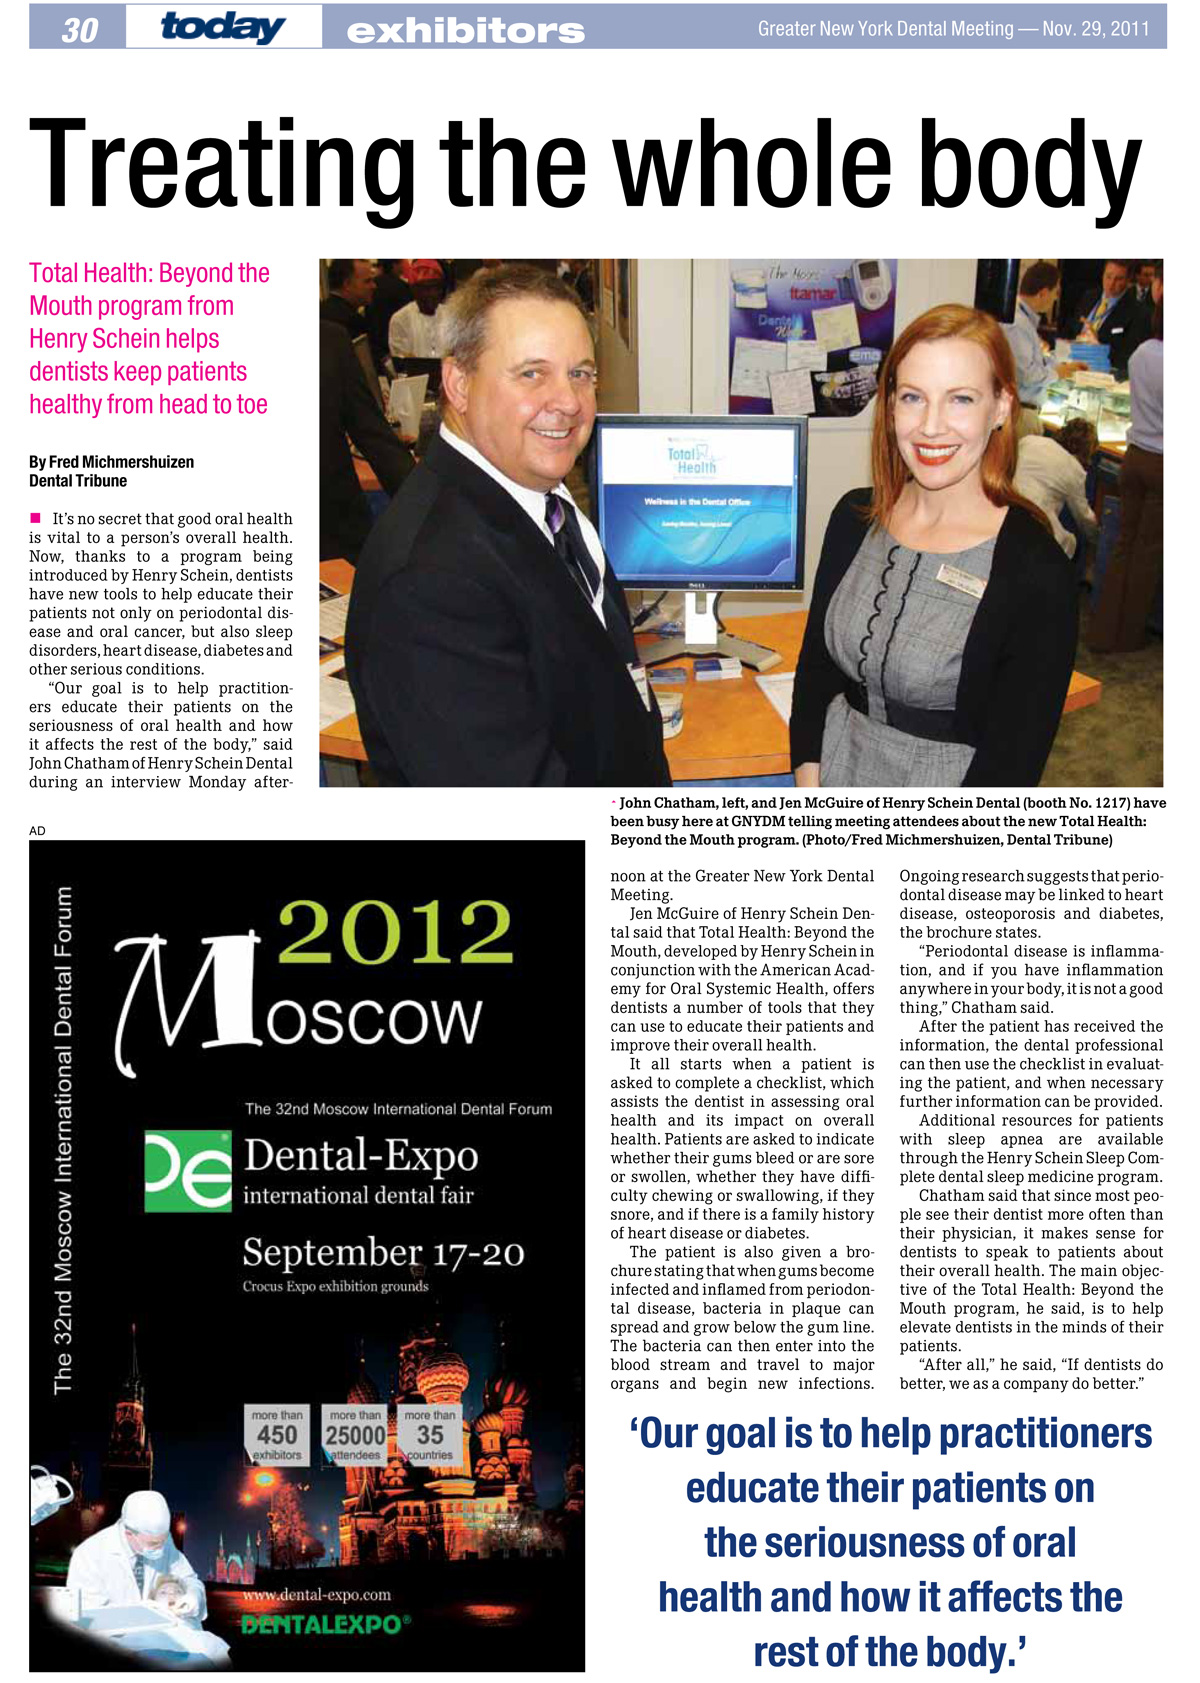 Fred Michmershuizen dental industry